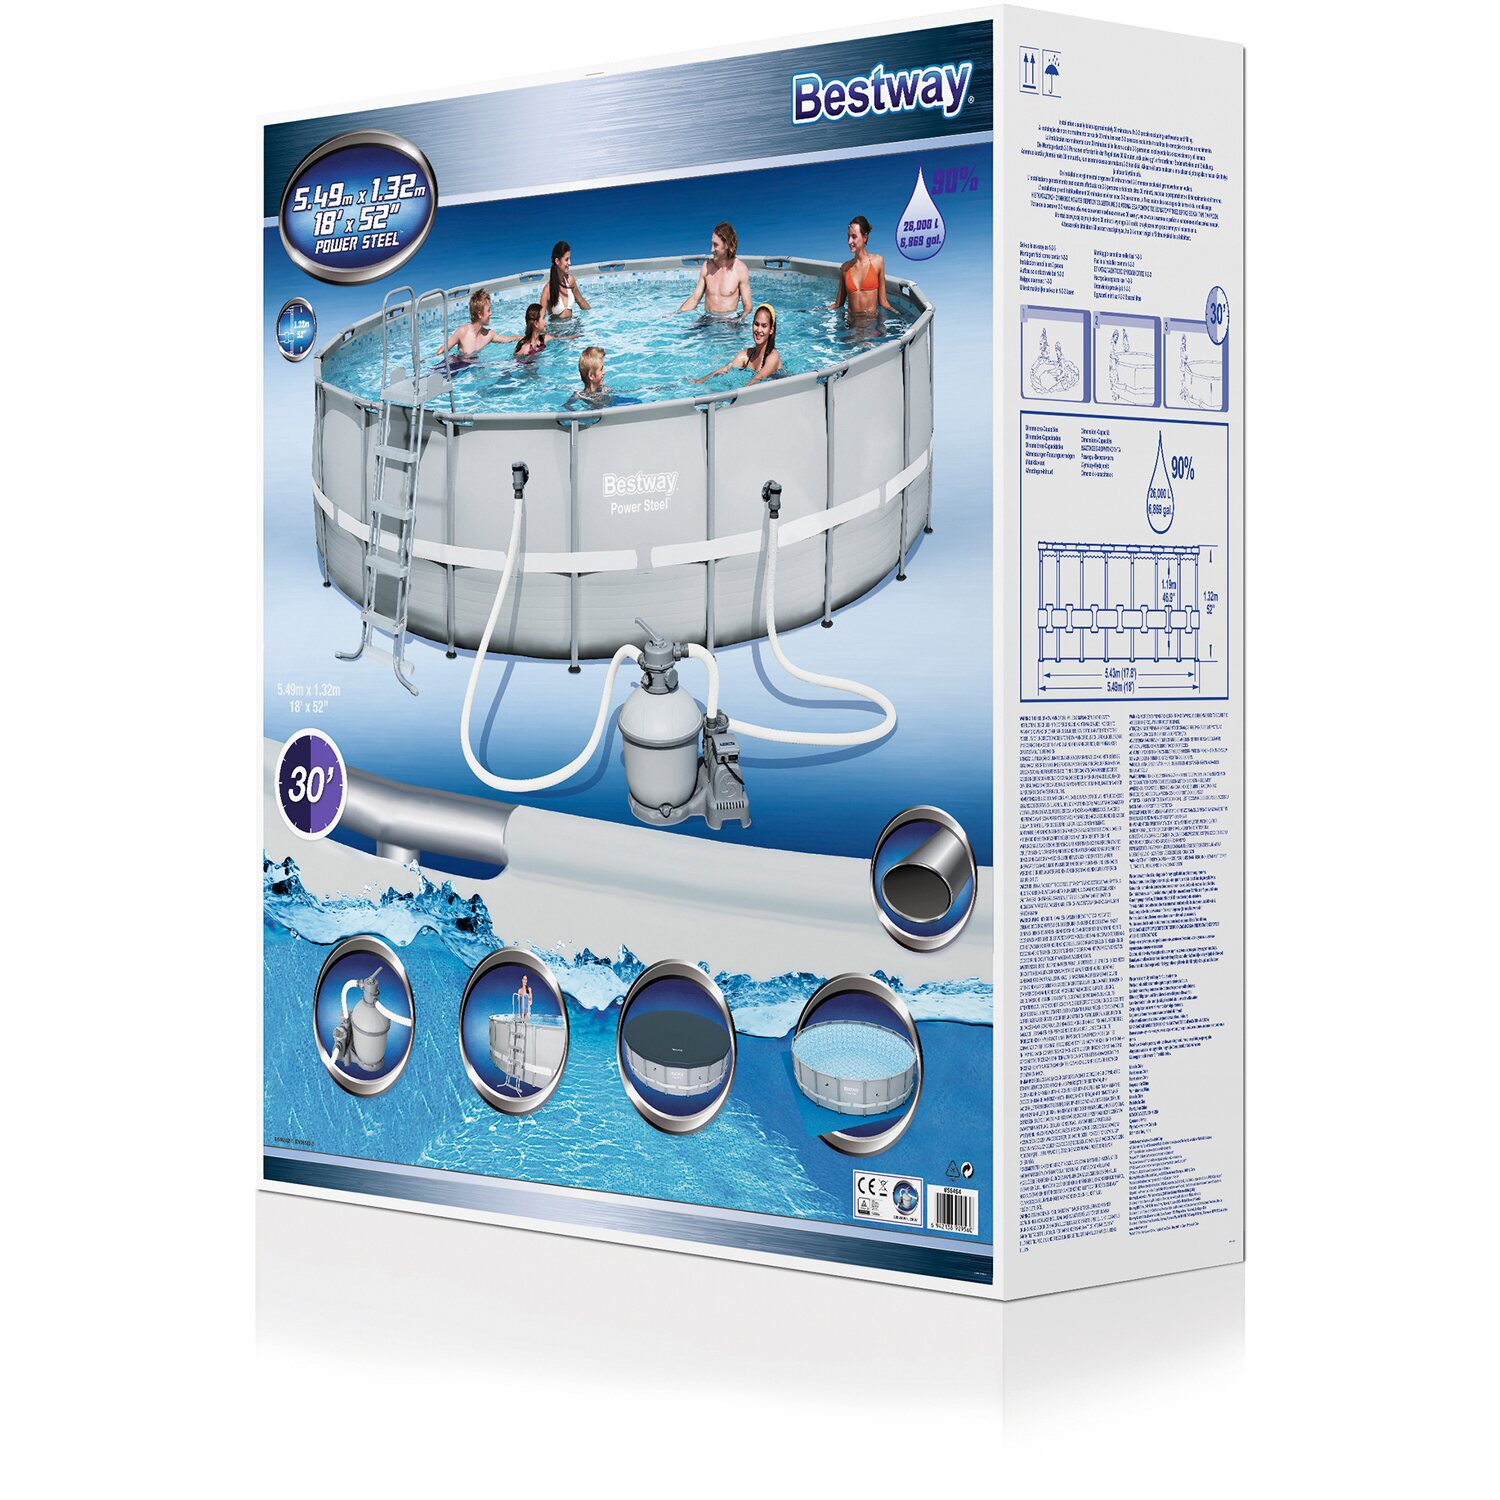 Bestway pool set power steel frame 549 cm x 132 cm kaufen for Bestway pool bei obi